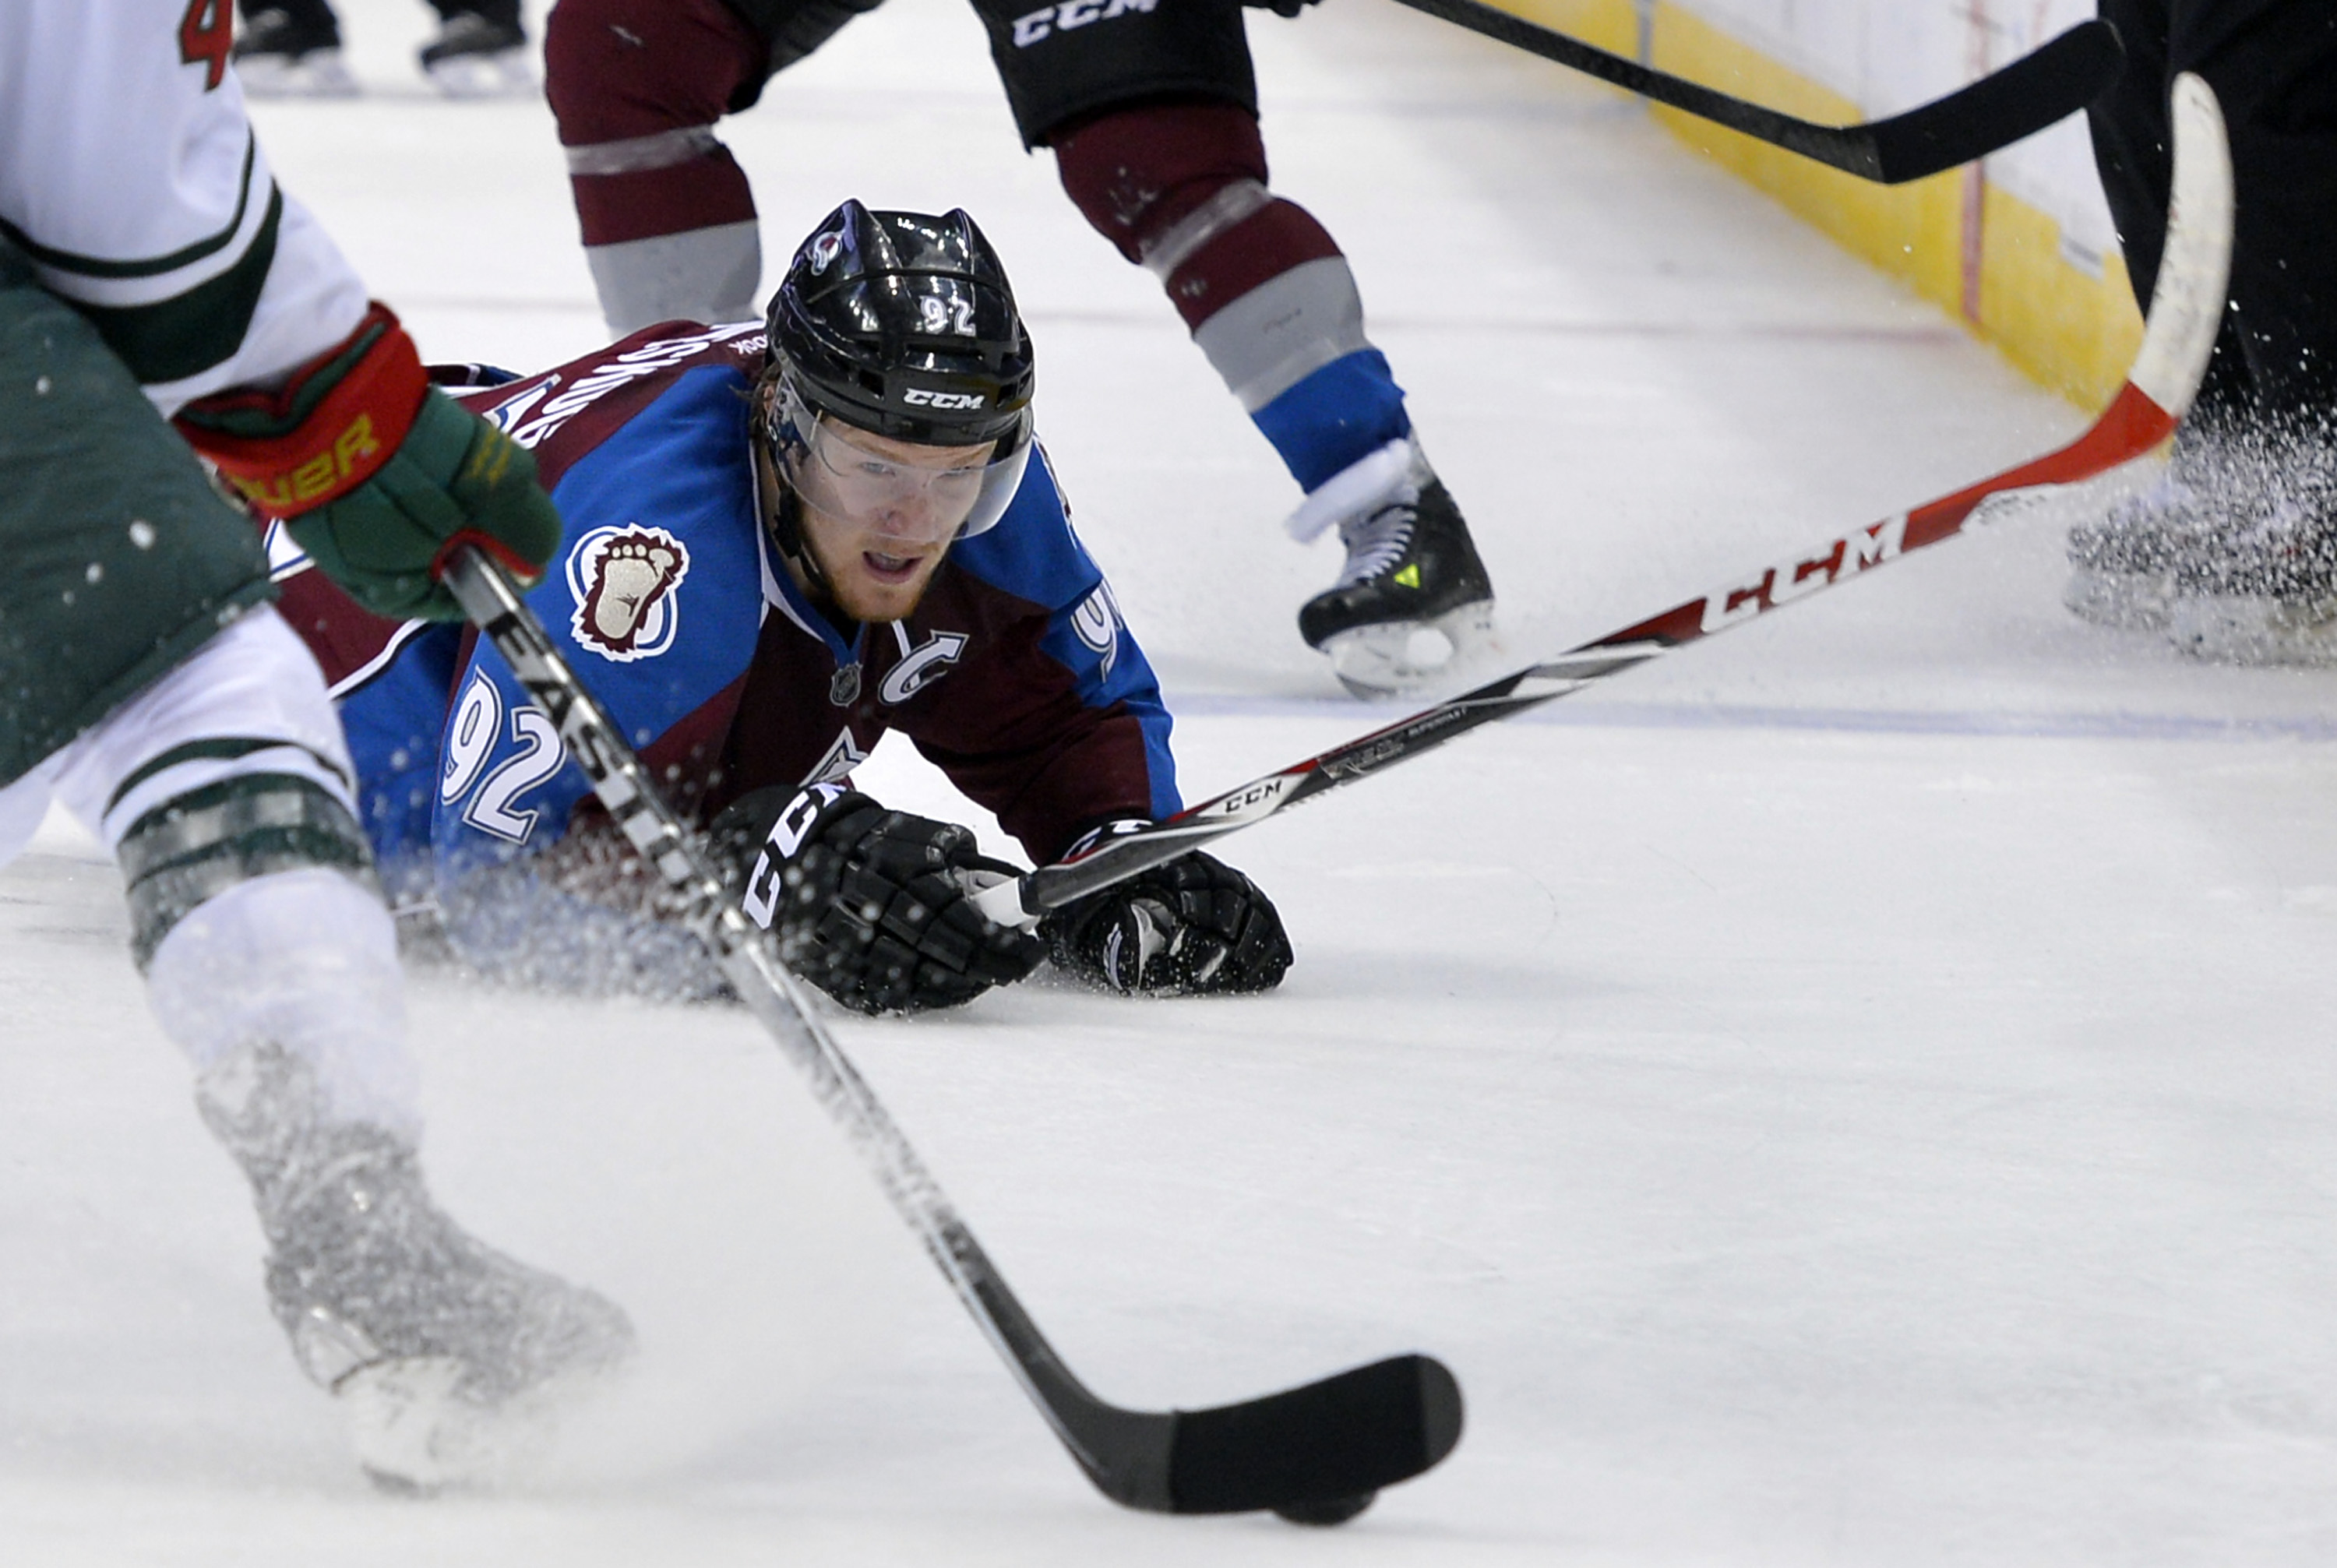 Colorado Avalanche left wing Gabriel Landeskog (92), from Sweden, looks on from the ice during the second period in Game 1 of an NHL hockey first-round playoff series against the Minnesota Wild, Thursday, April 17, 2014, in Denver